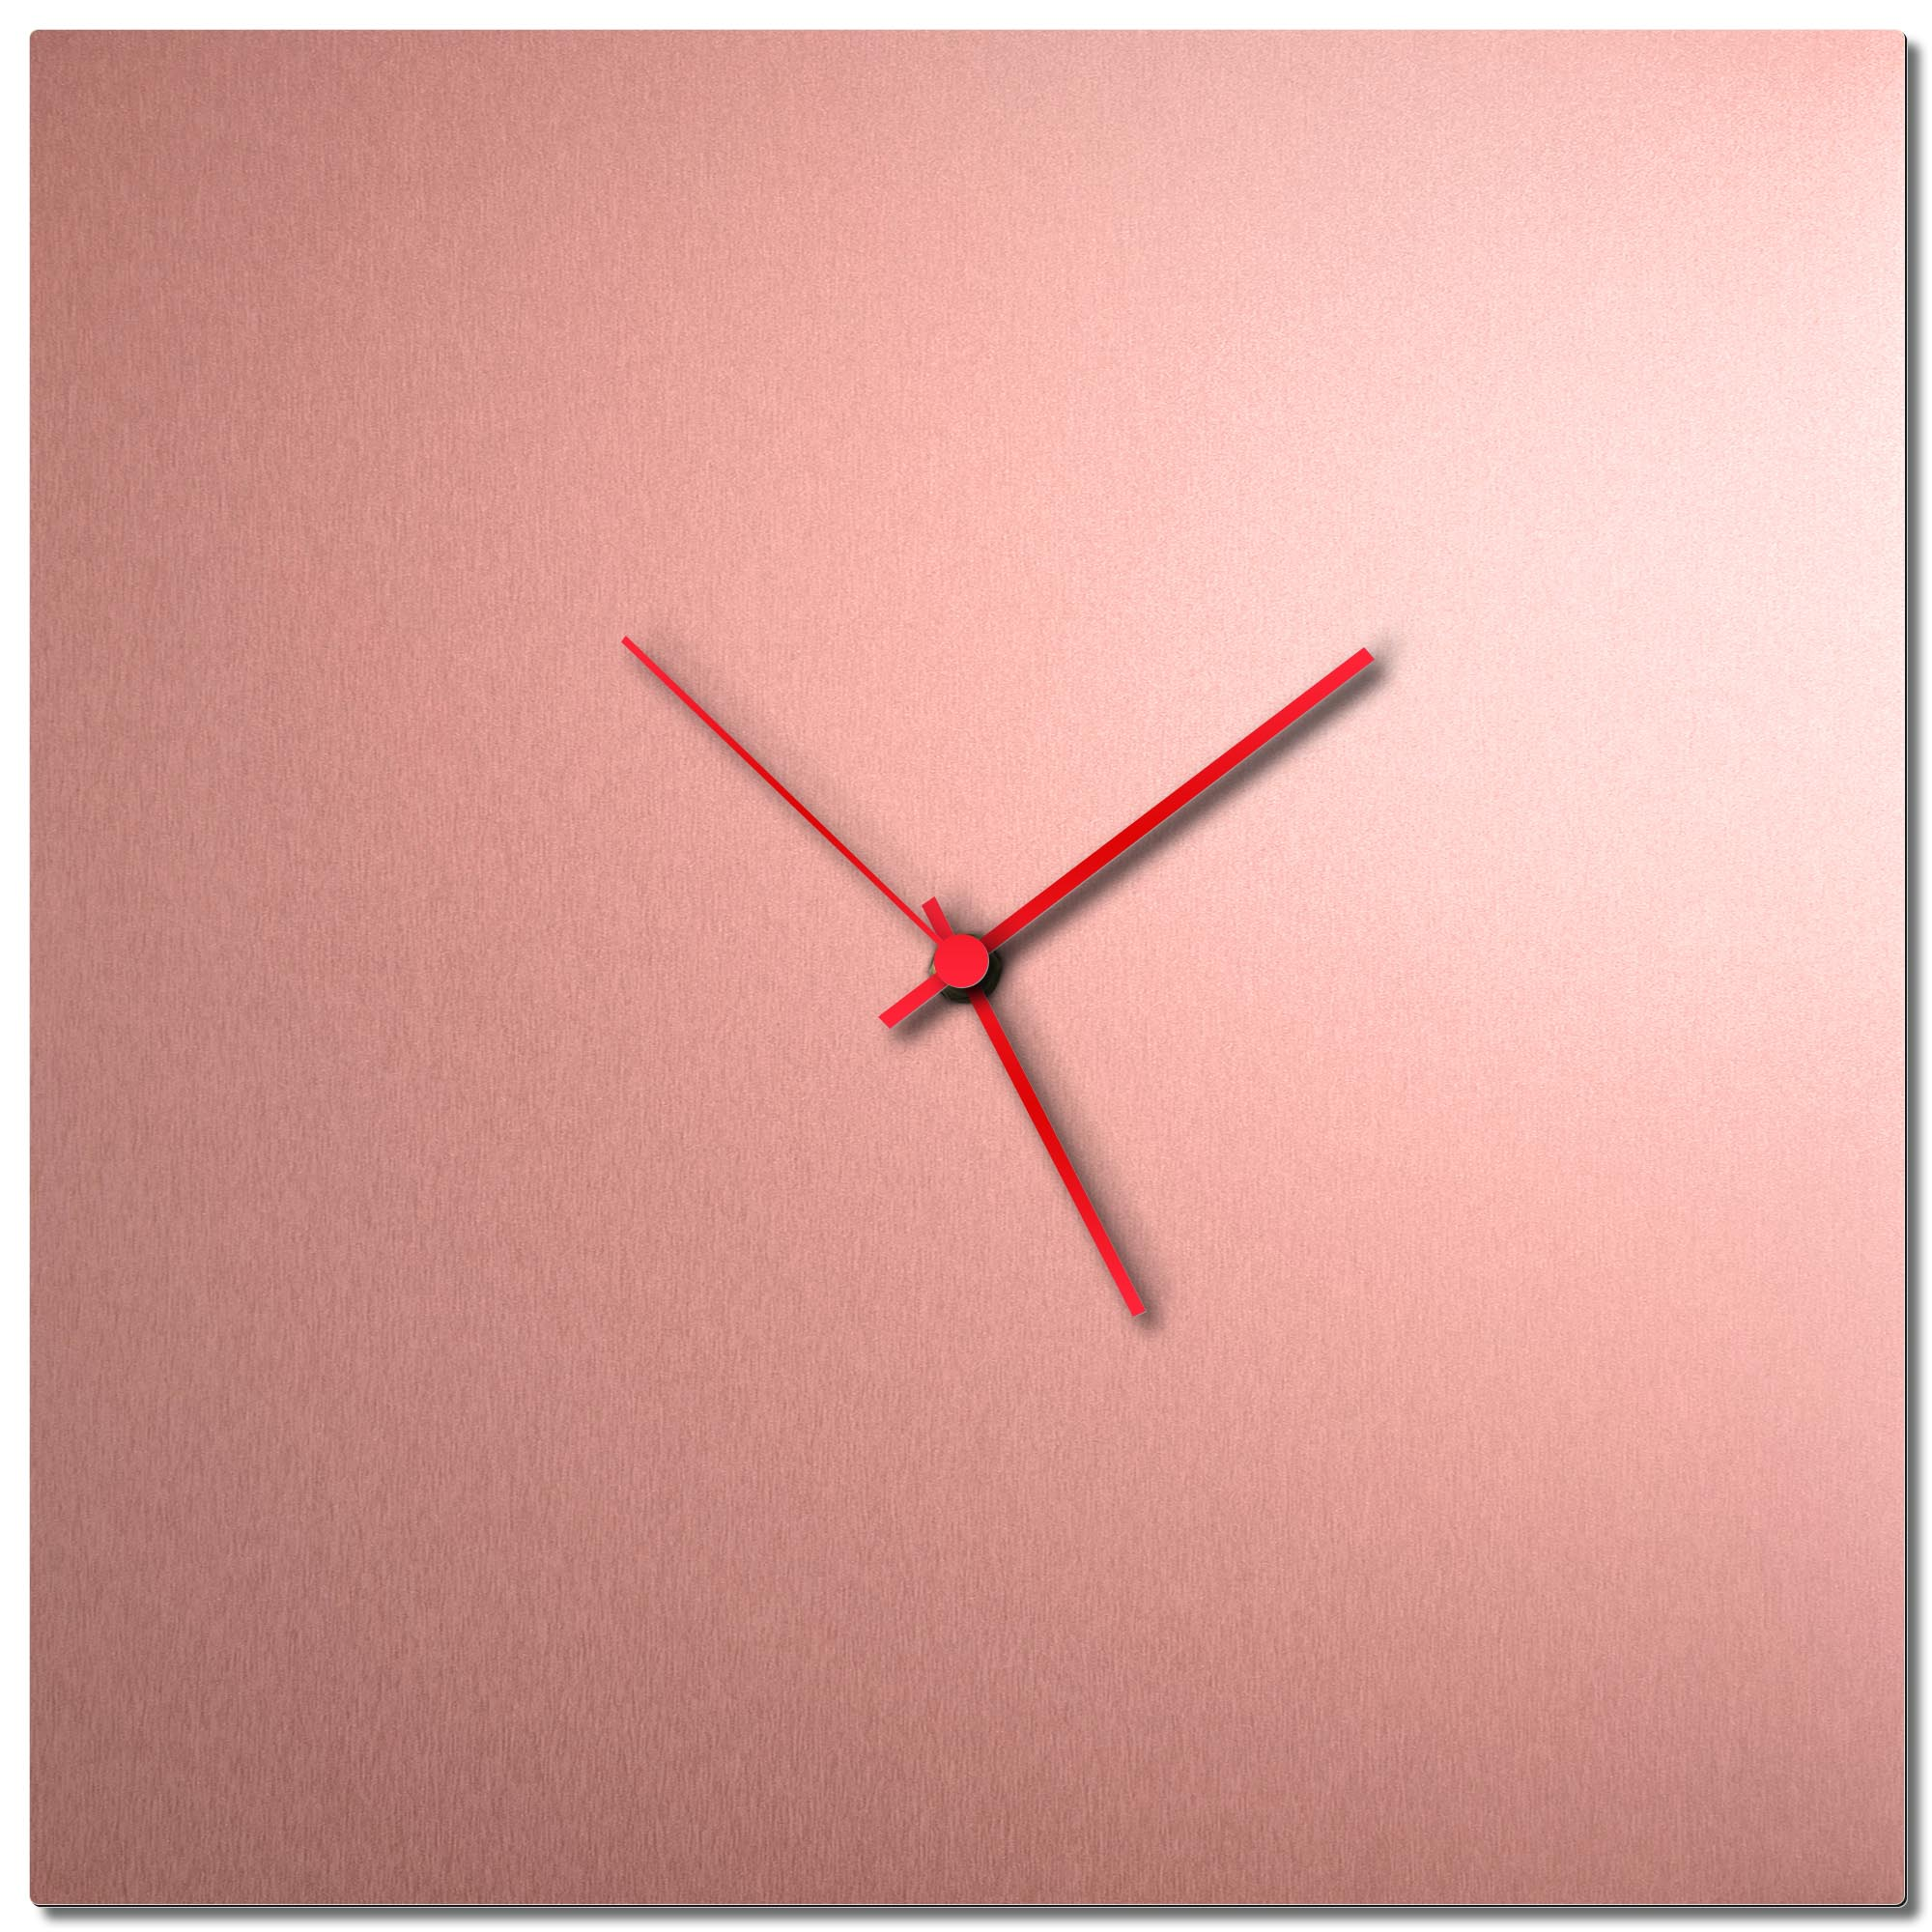 Adam Schwoeppe 'Coppersmith Square Clock Red' Midcentury Modern Style Wall Clock